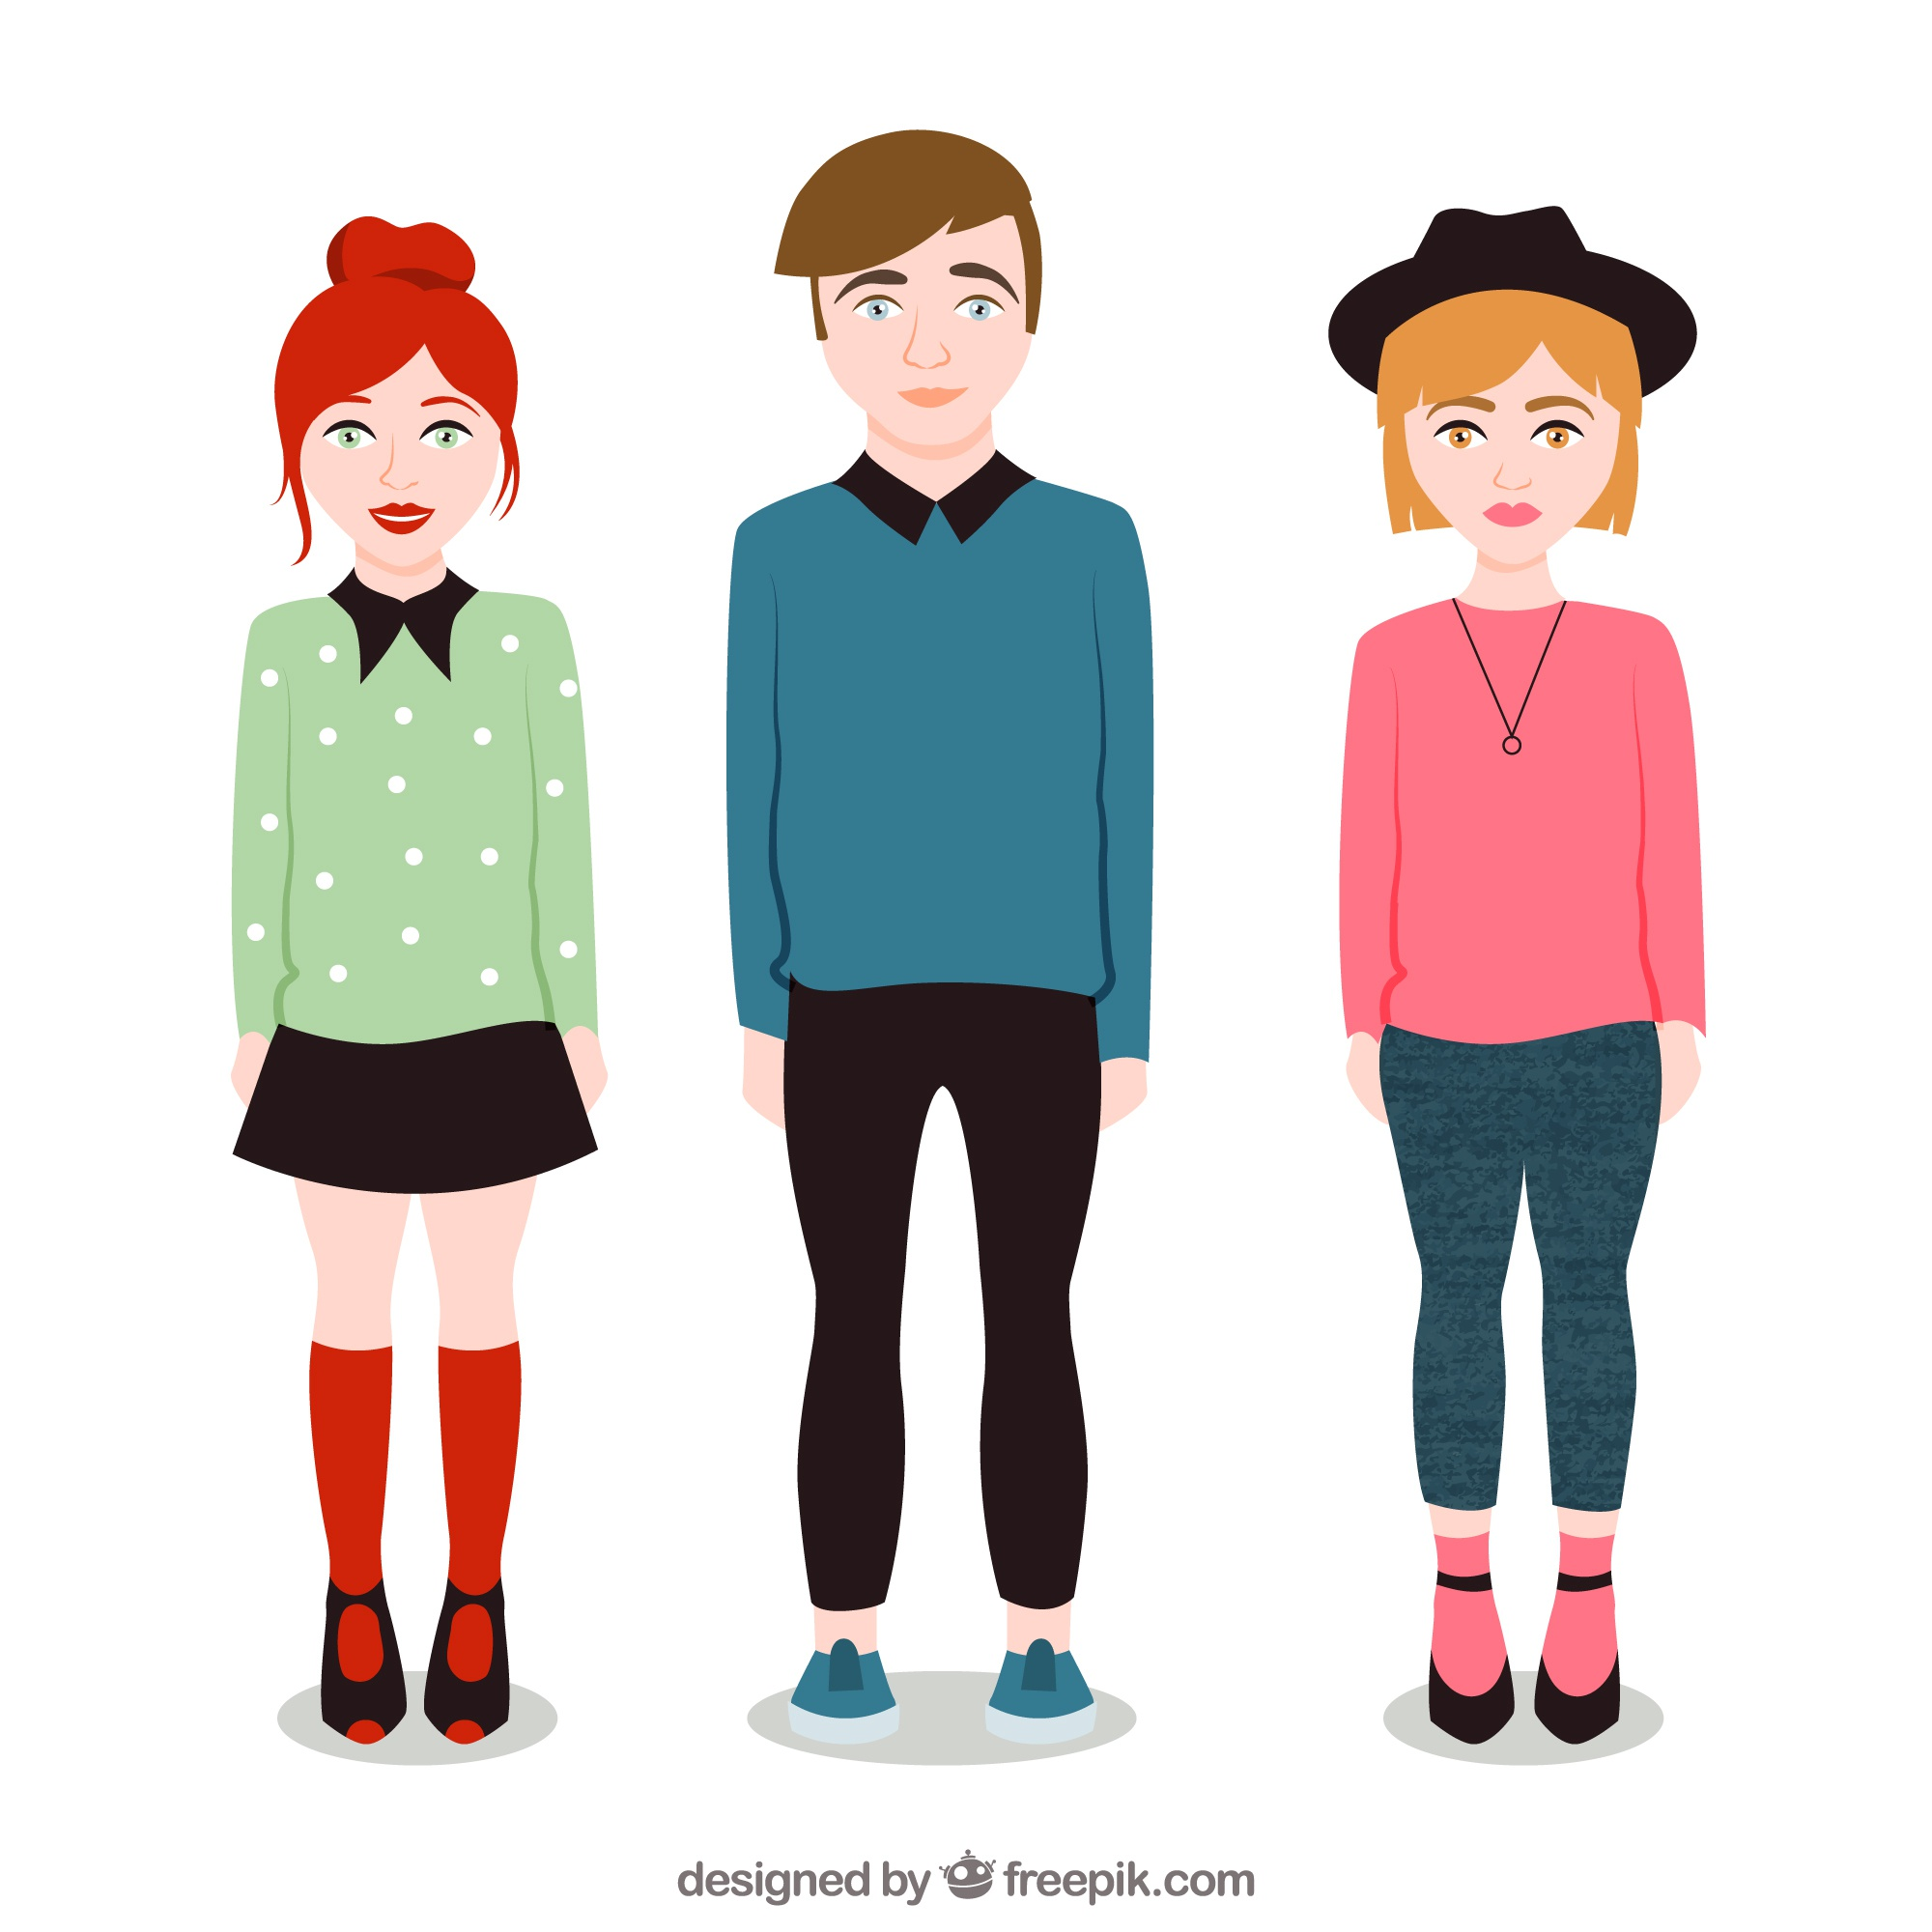 Illustrated modern young people